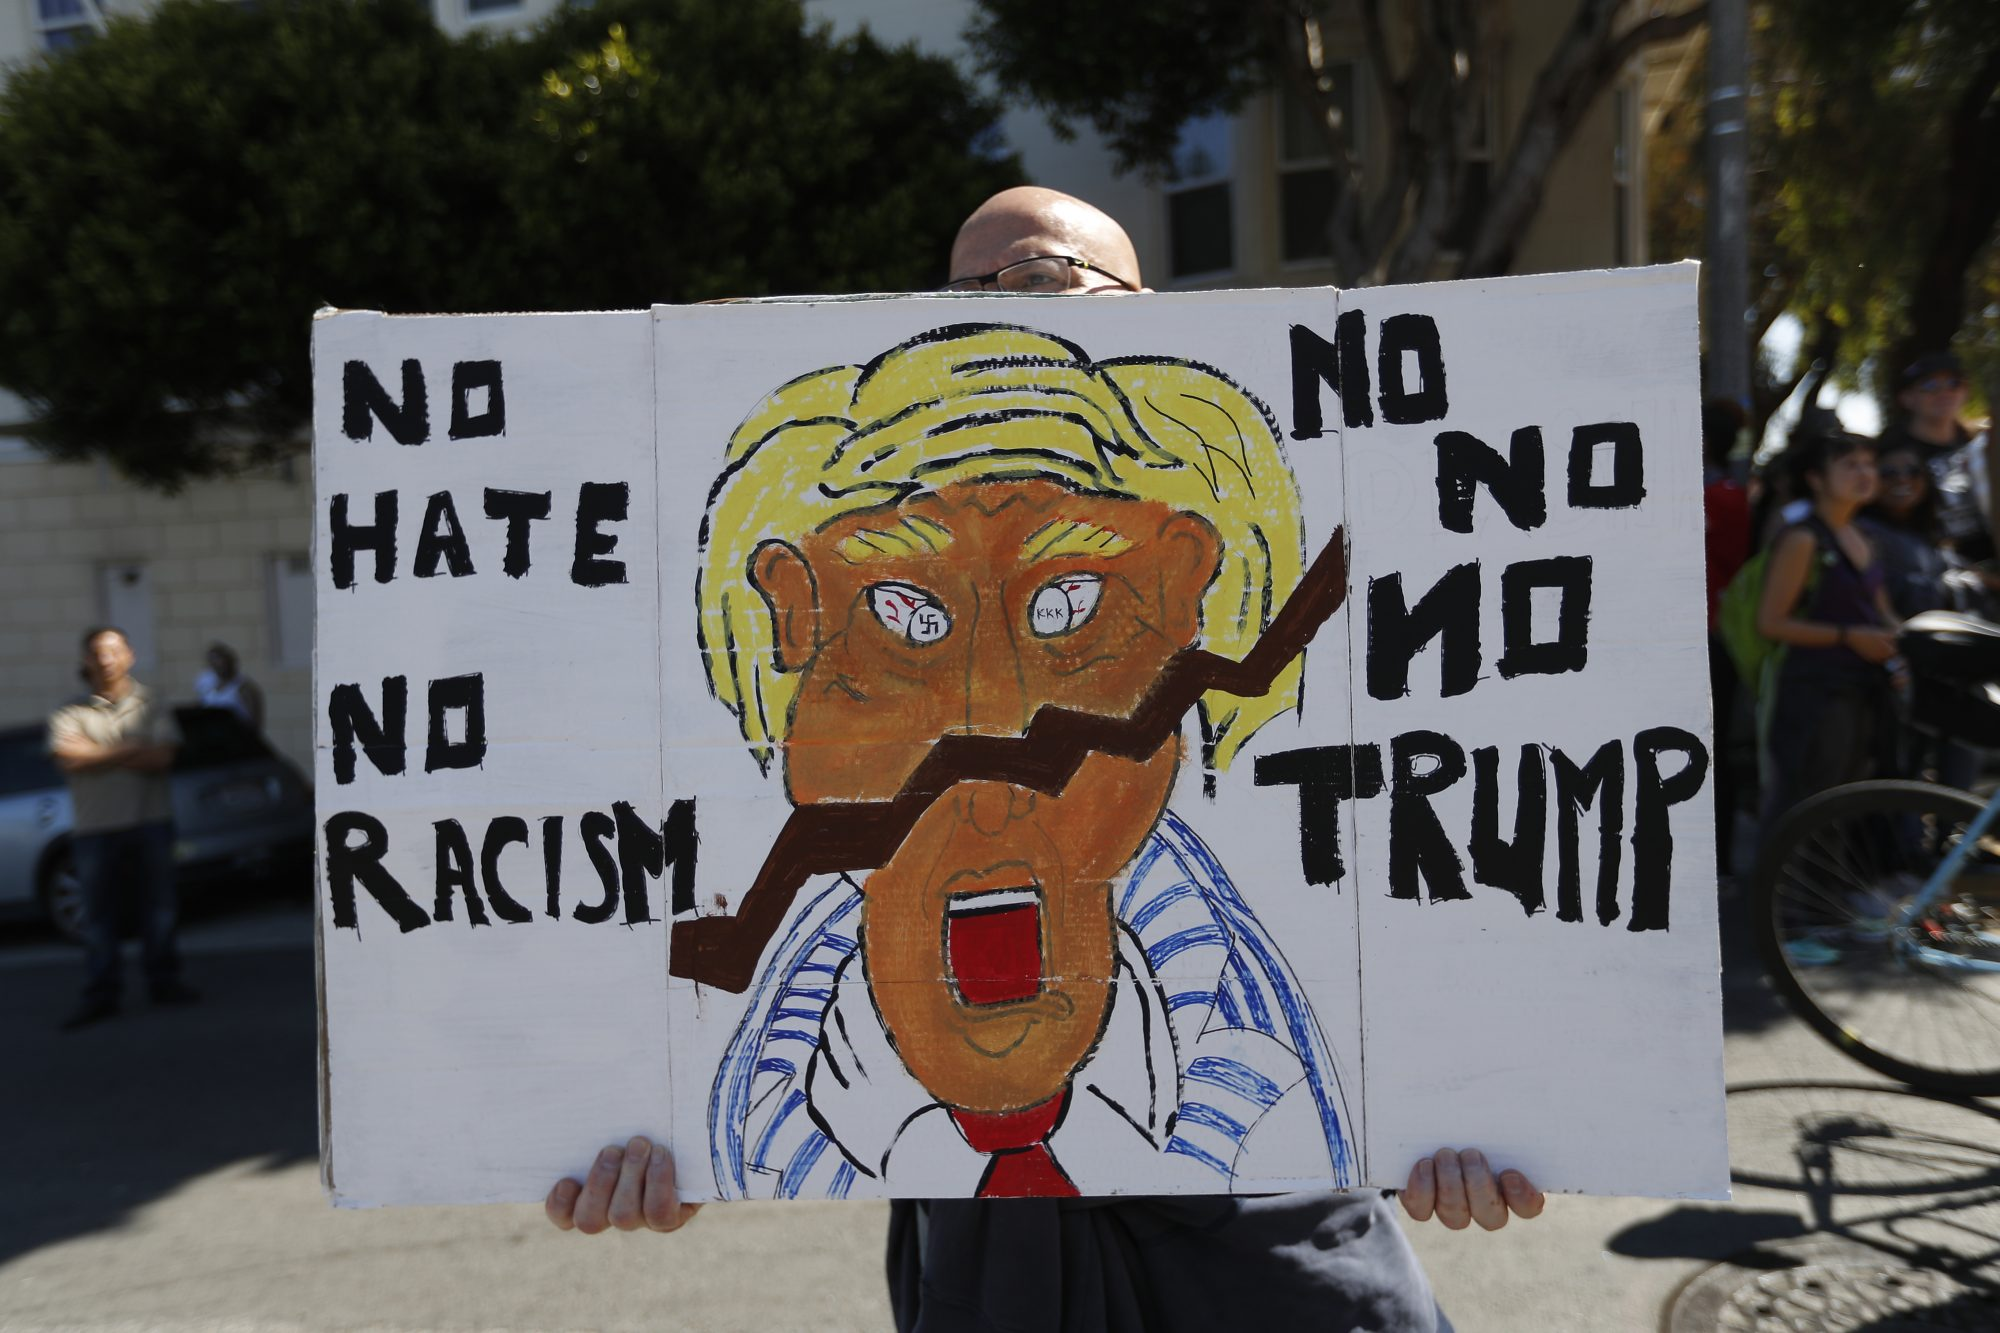 Alt Right Protesters Hold News Conference In San Francisco After Cancelling Rally, Amid Counter Demonstrations Planned